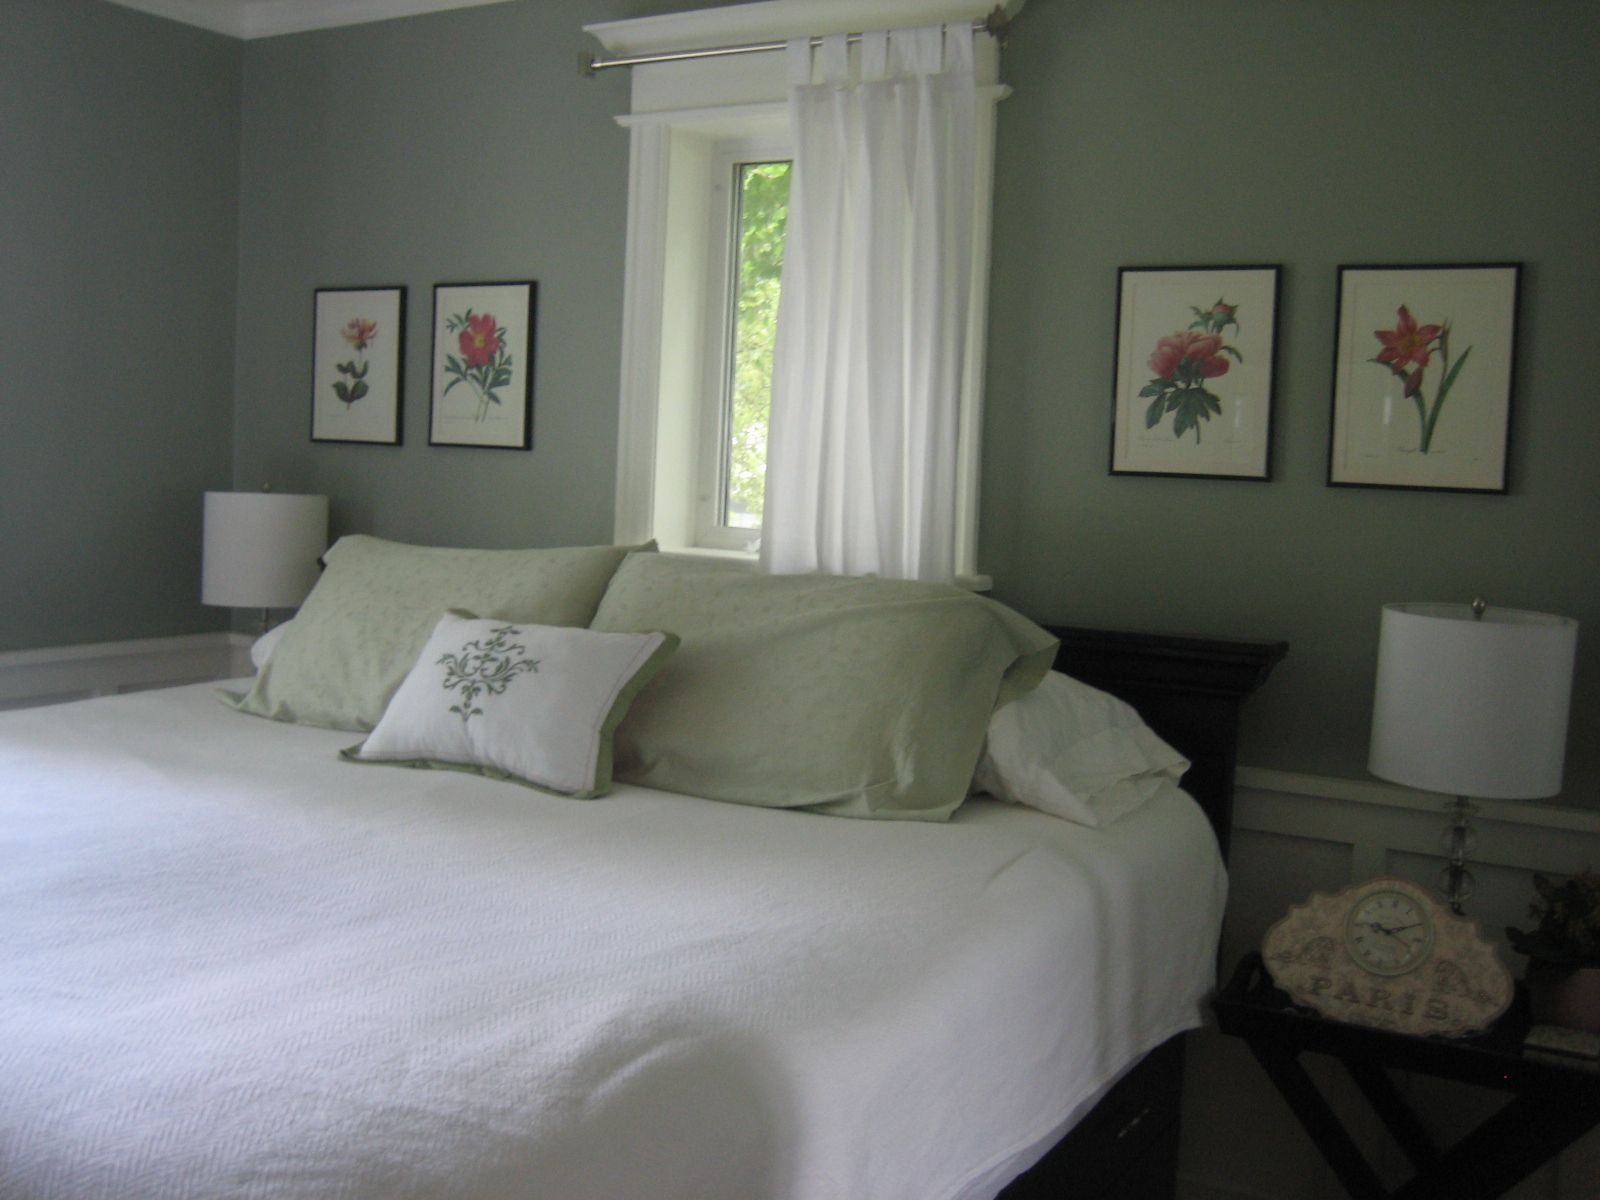 silver and green bedroom | ... basement and dining room are mis-tinted